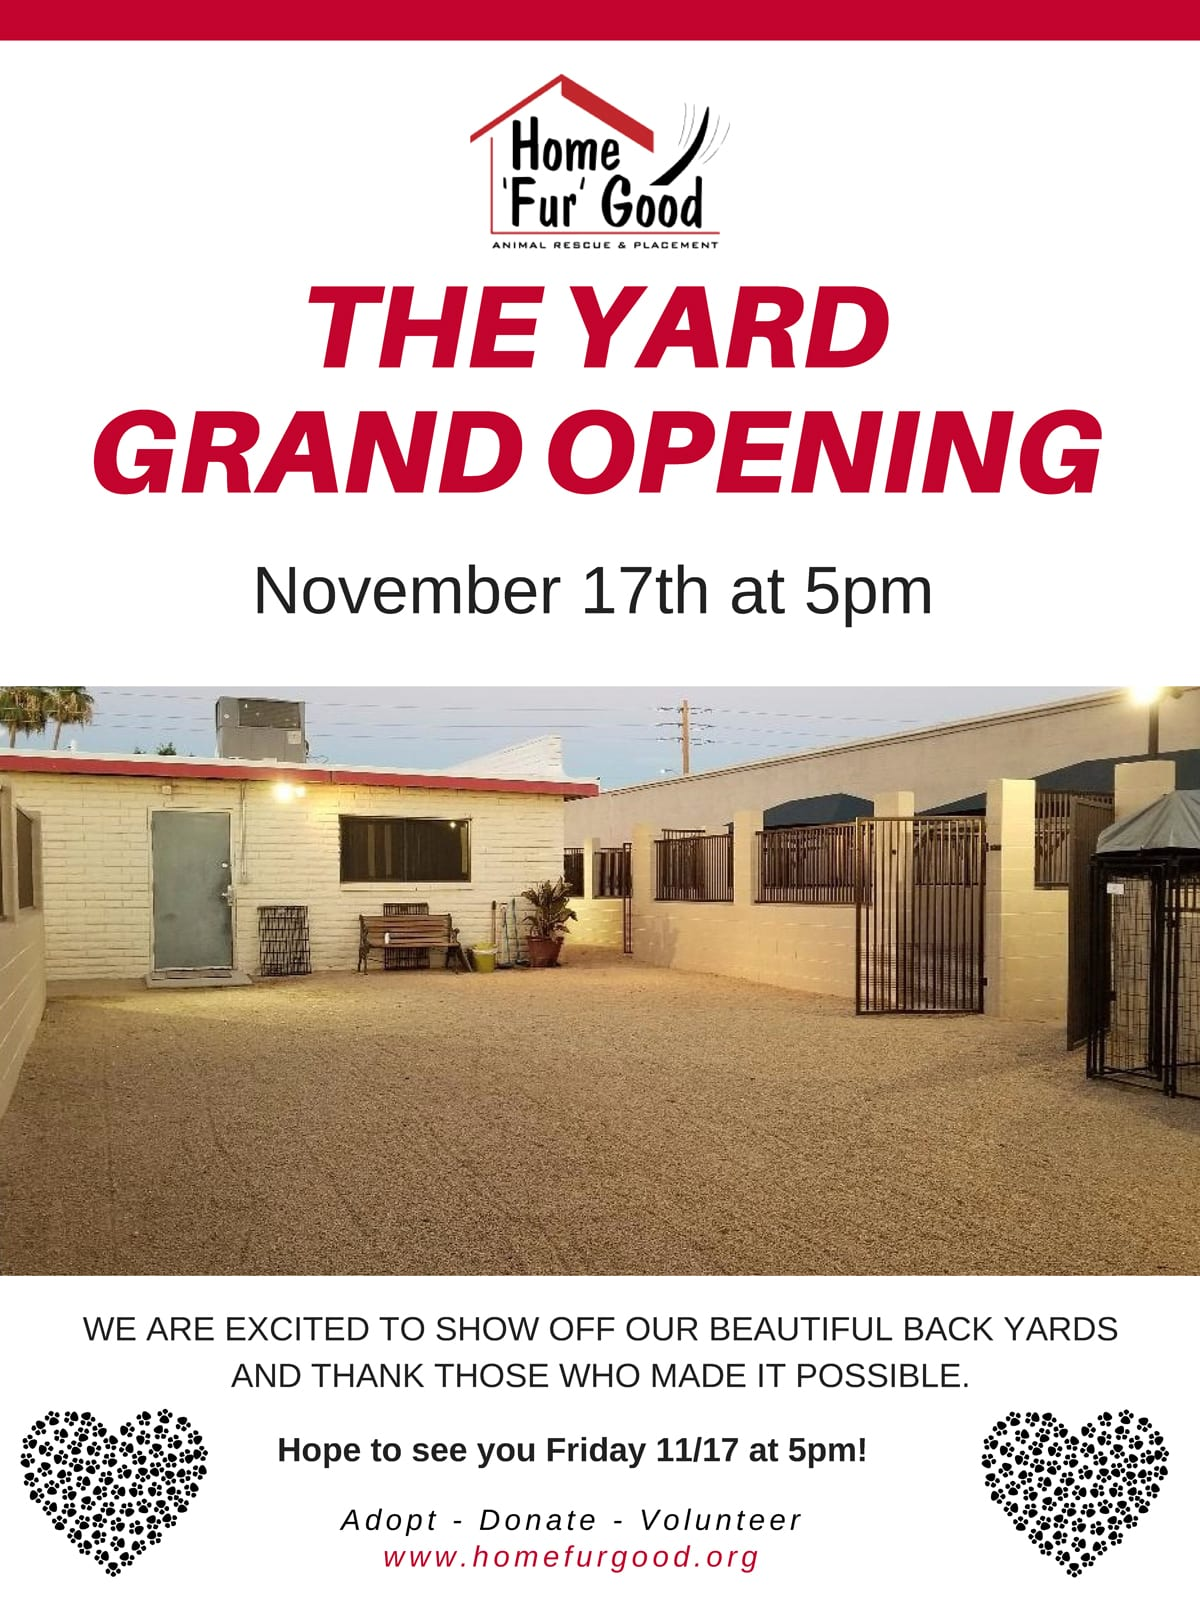 The Yard Grand Opening